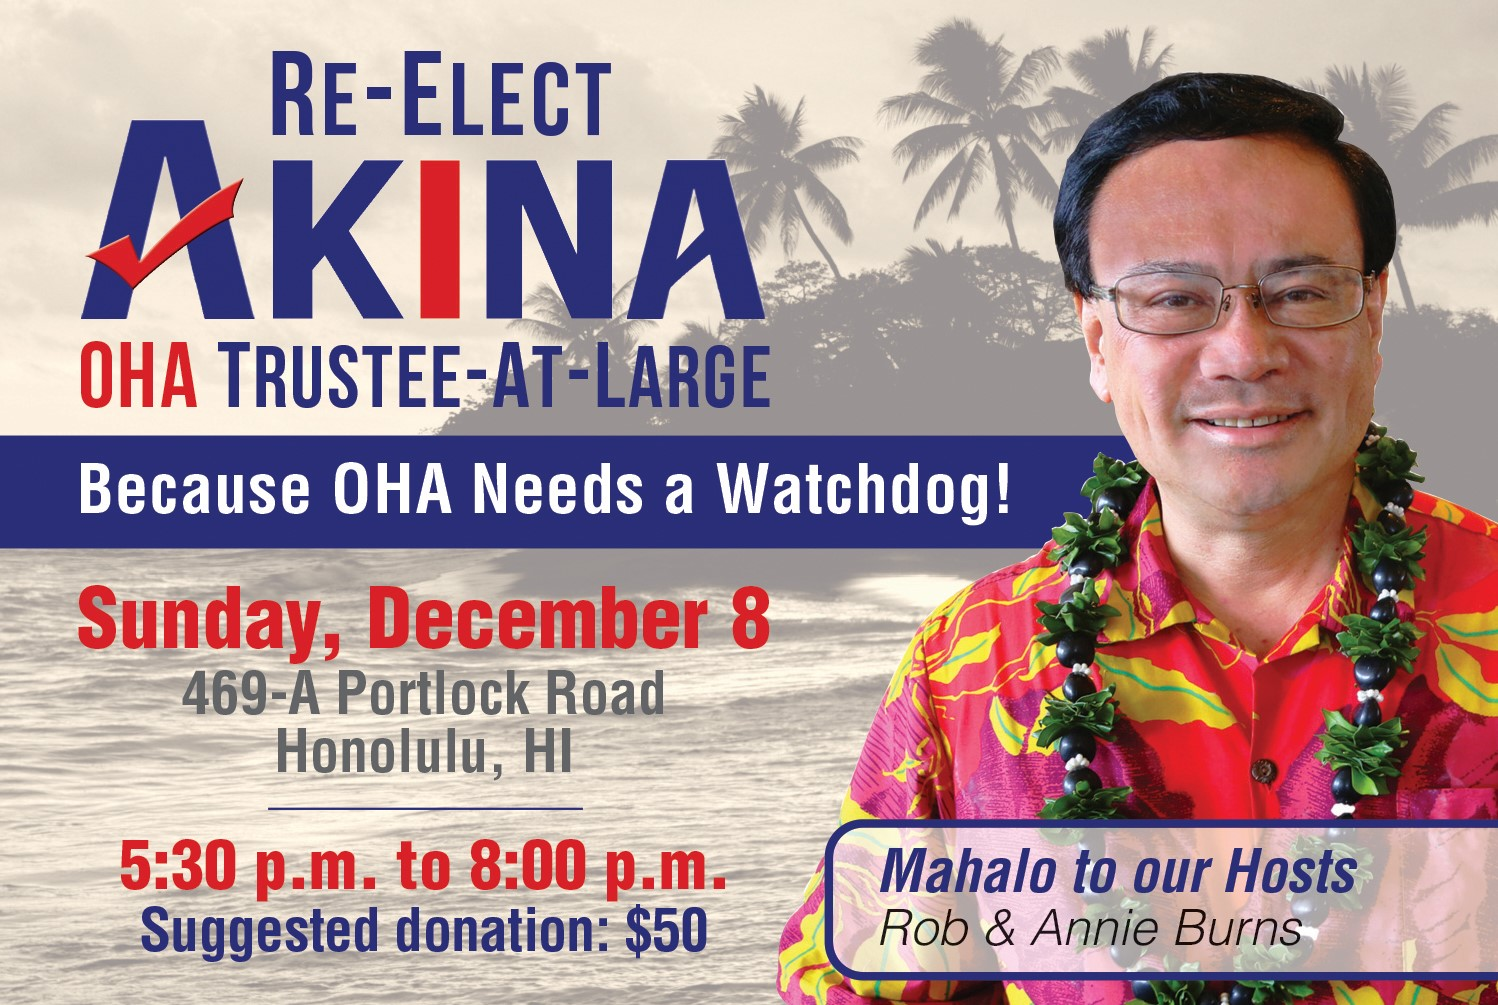 Re-Elect Akina Kickoff Party